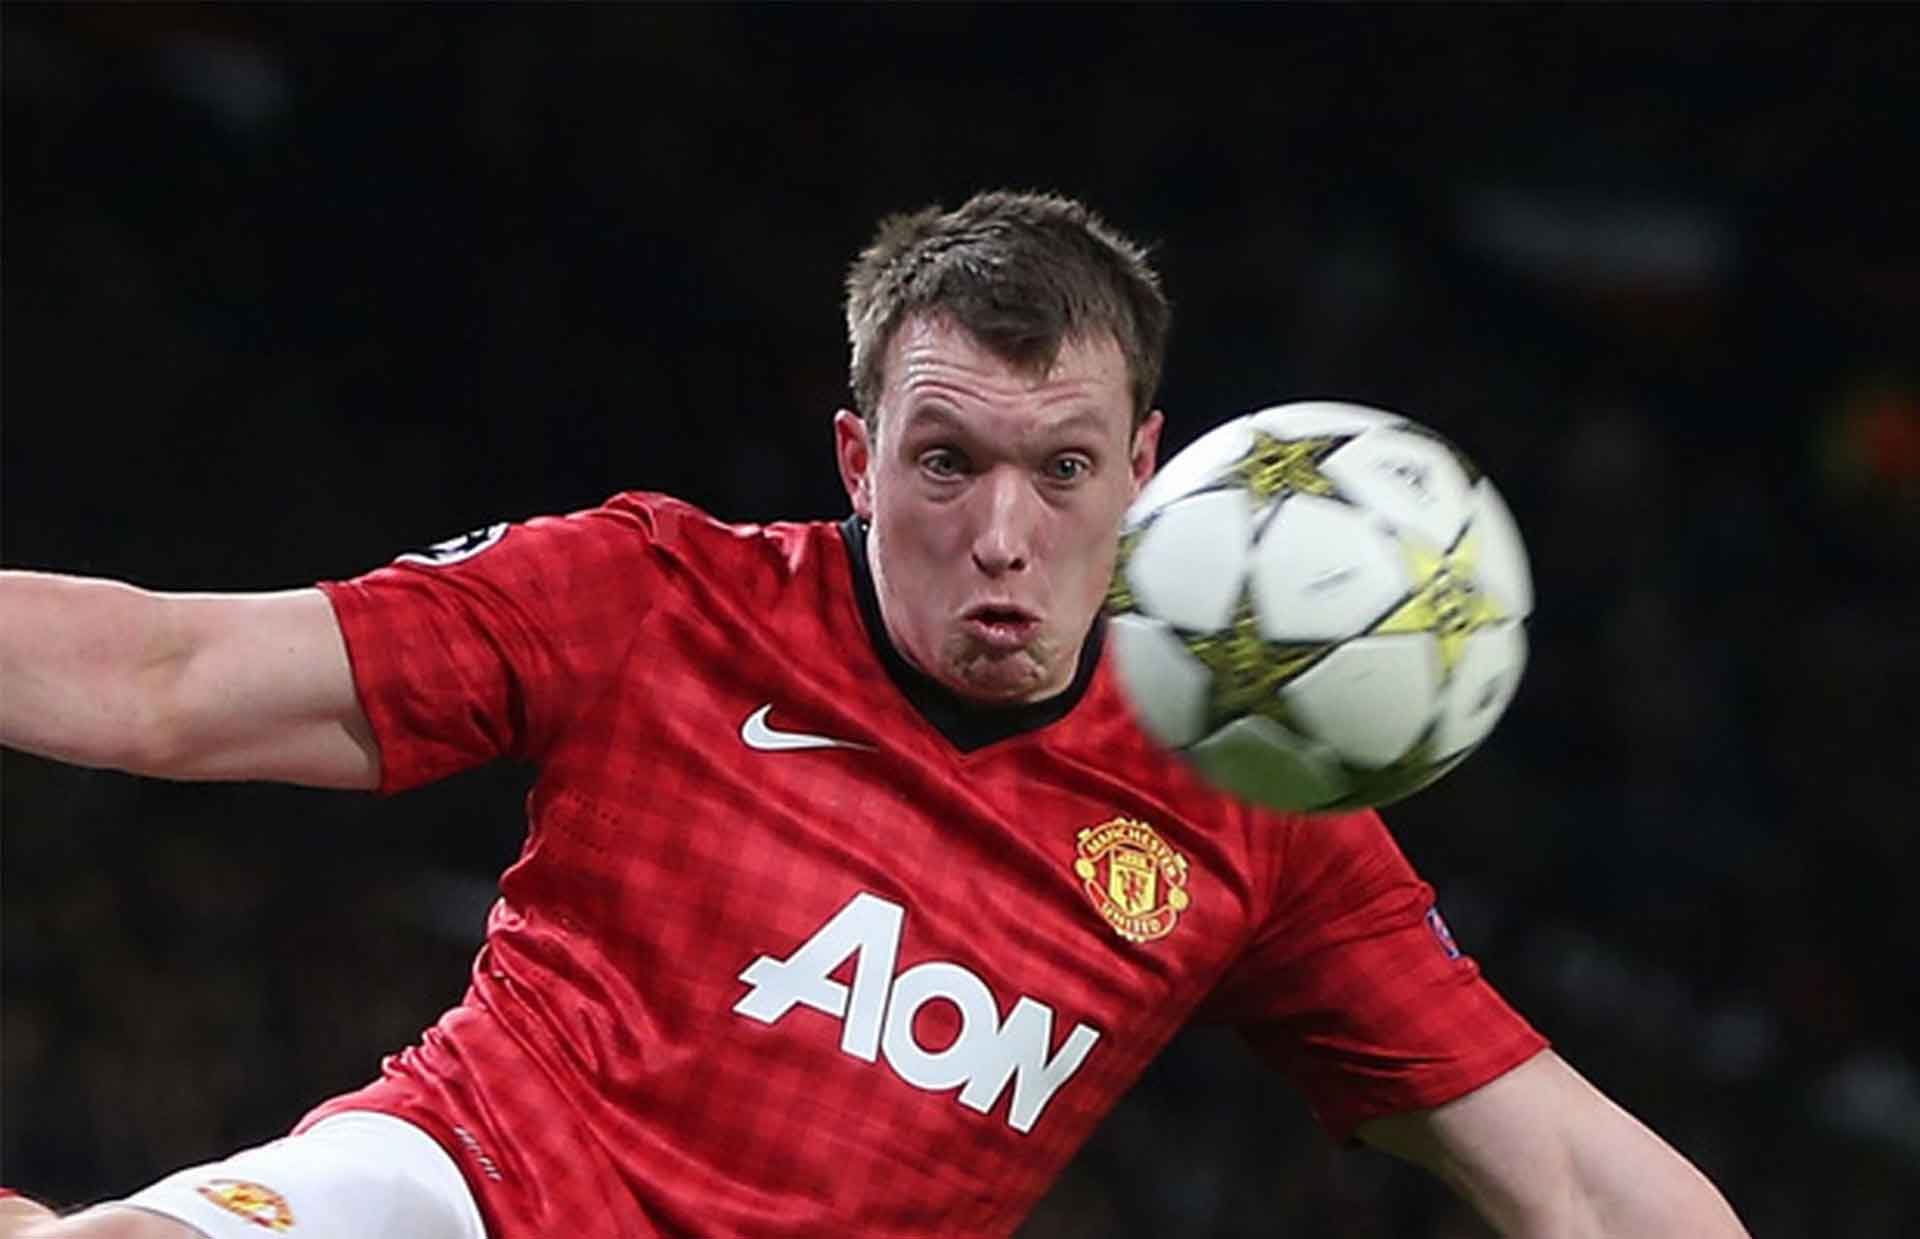 phil jones gurning